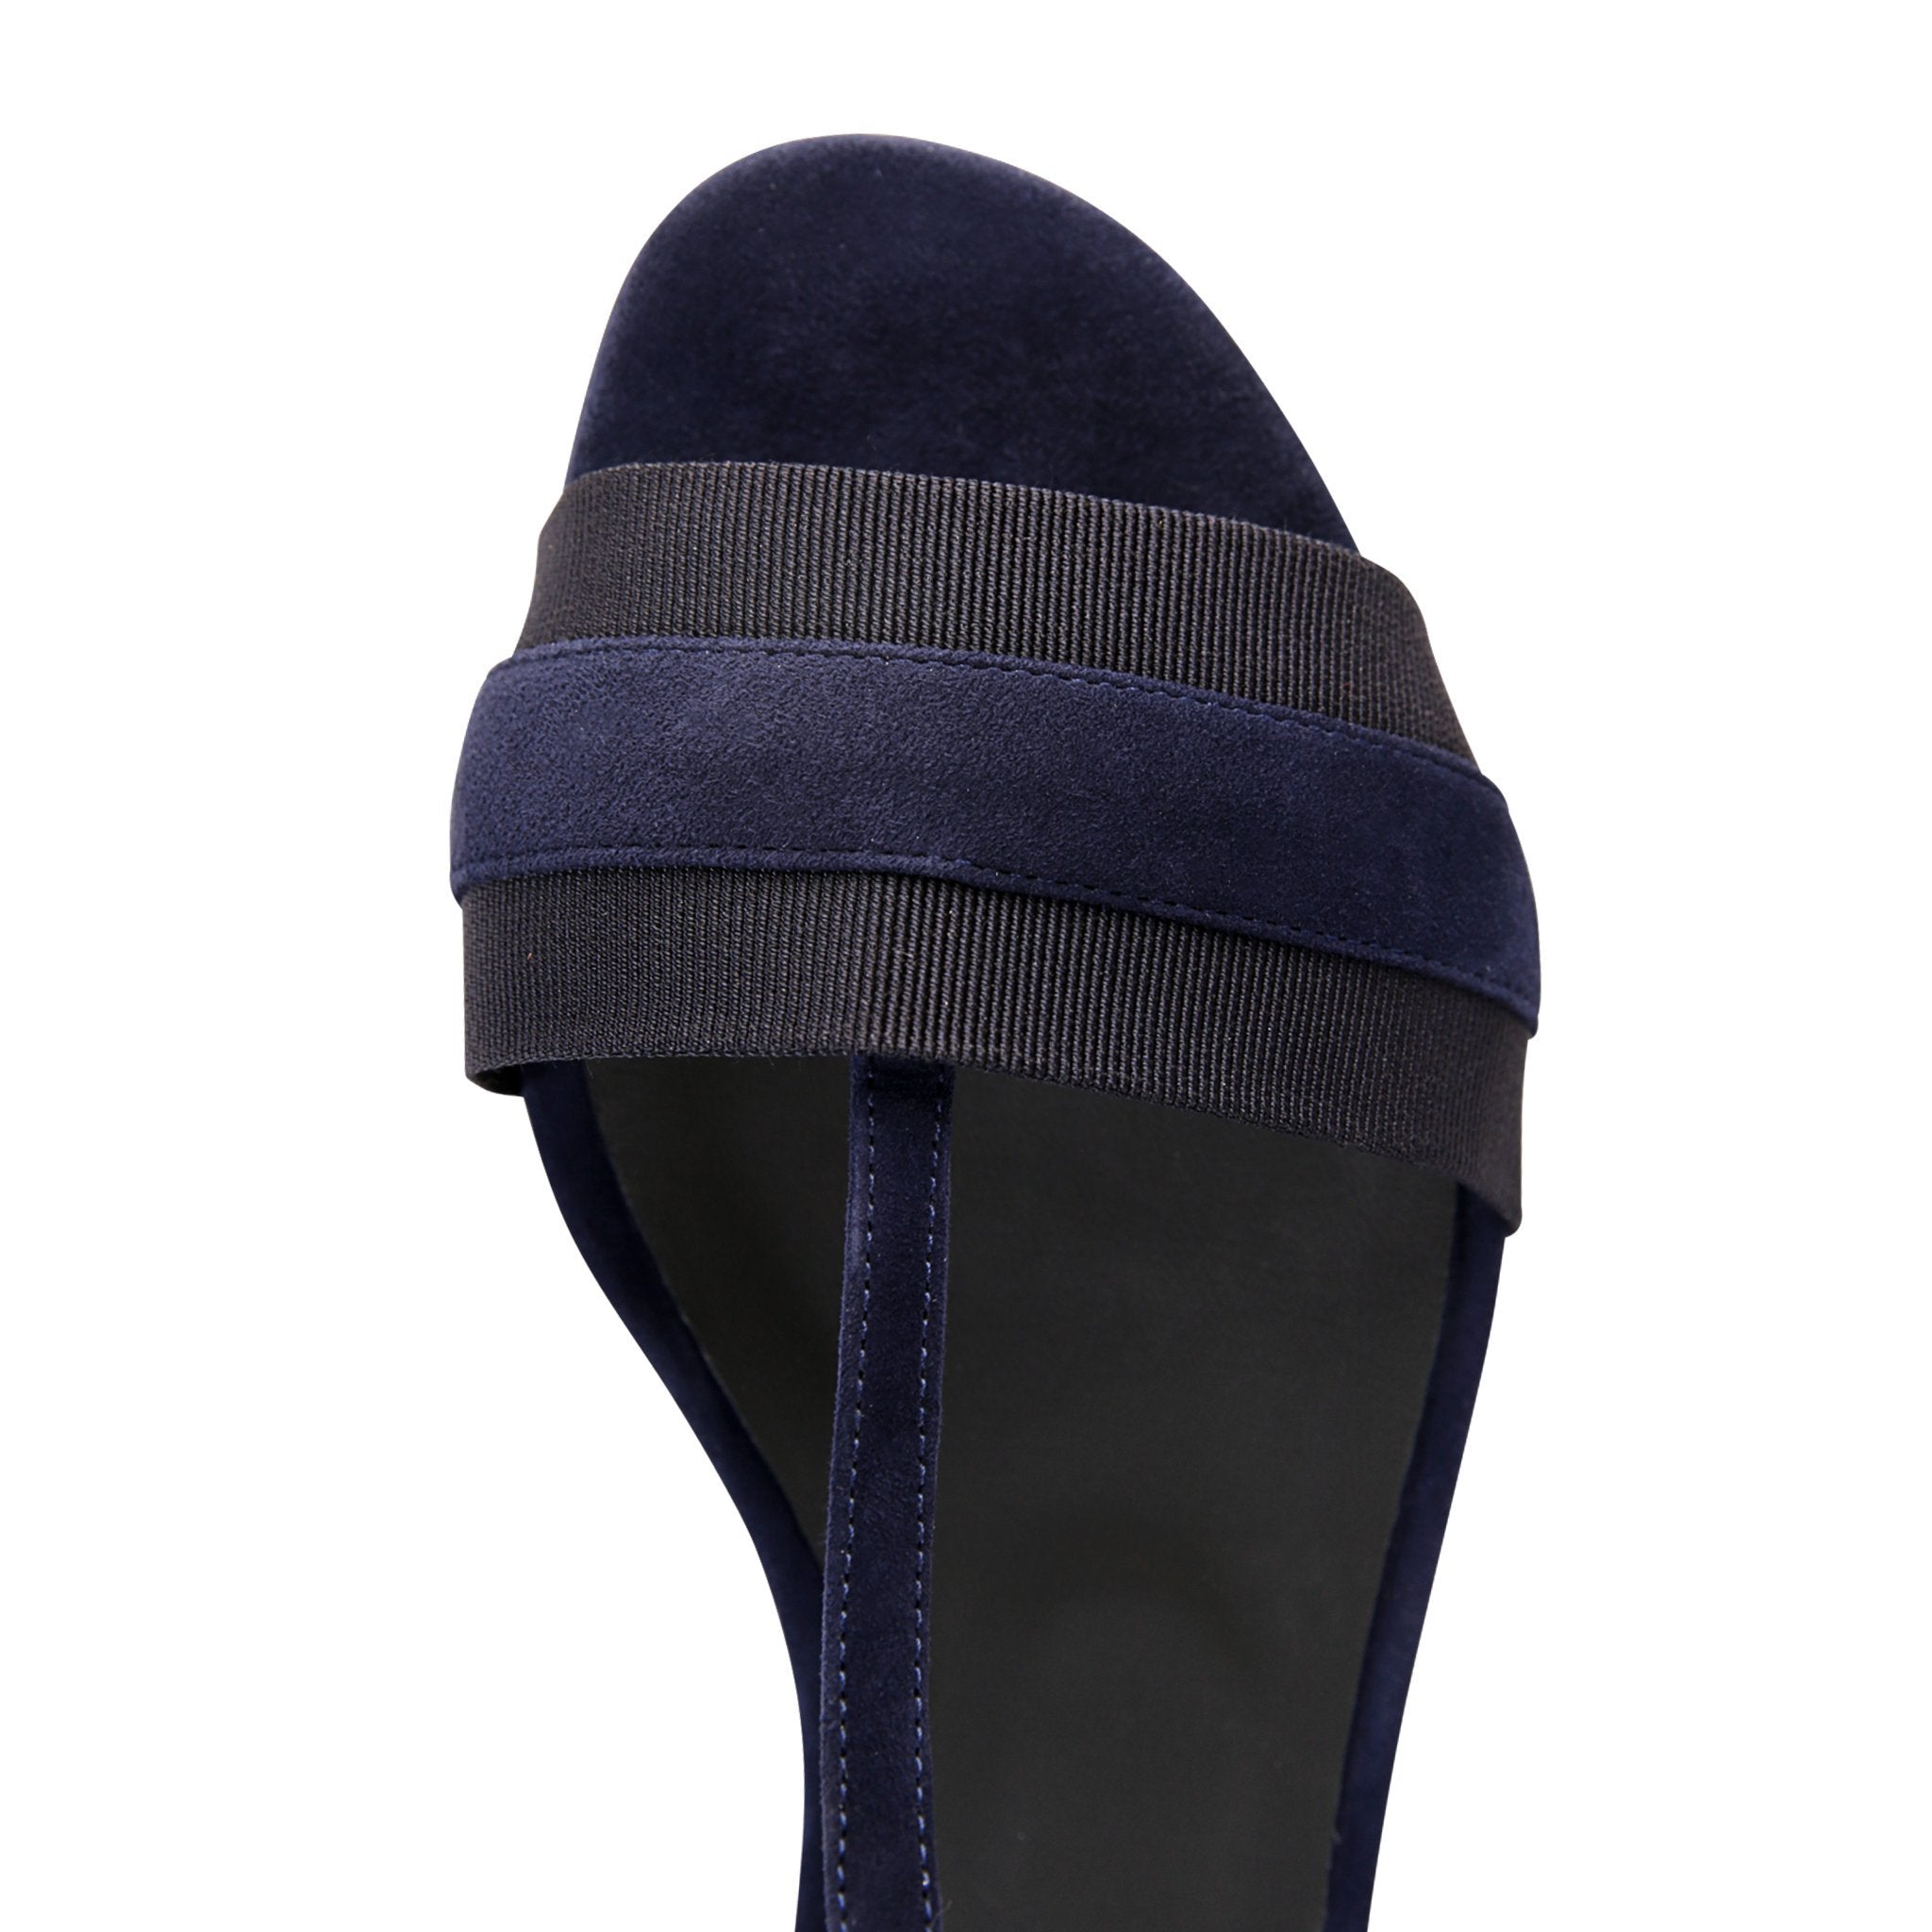 PERUGIA - Velukid Midnight + Grosgrain Navy, VIAJIYU - Women's Hand Made Sustainable Luxury Shoes. Made in Italy. Made to Order.